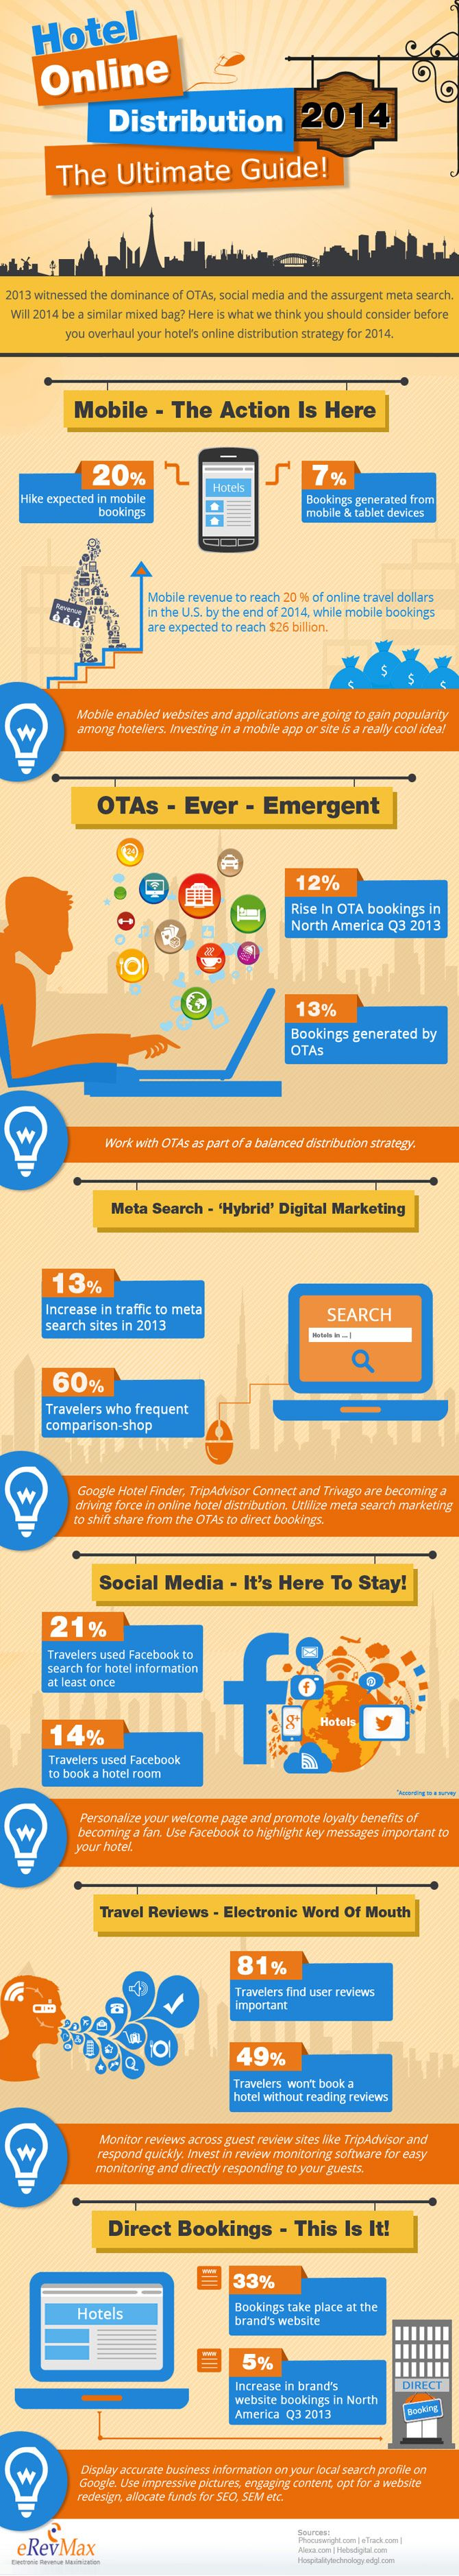 Hotel Online Distribution 2014 The Ultimate Guide   #Infographic #Hotel #Marketing